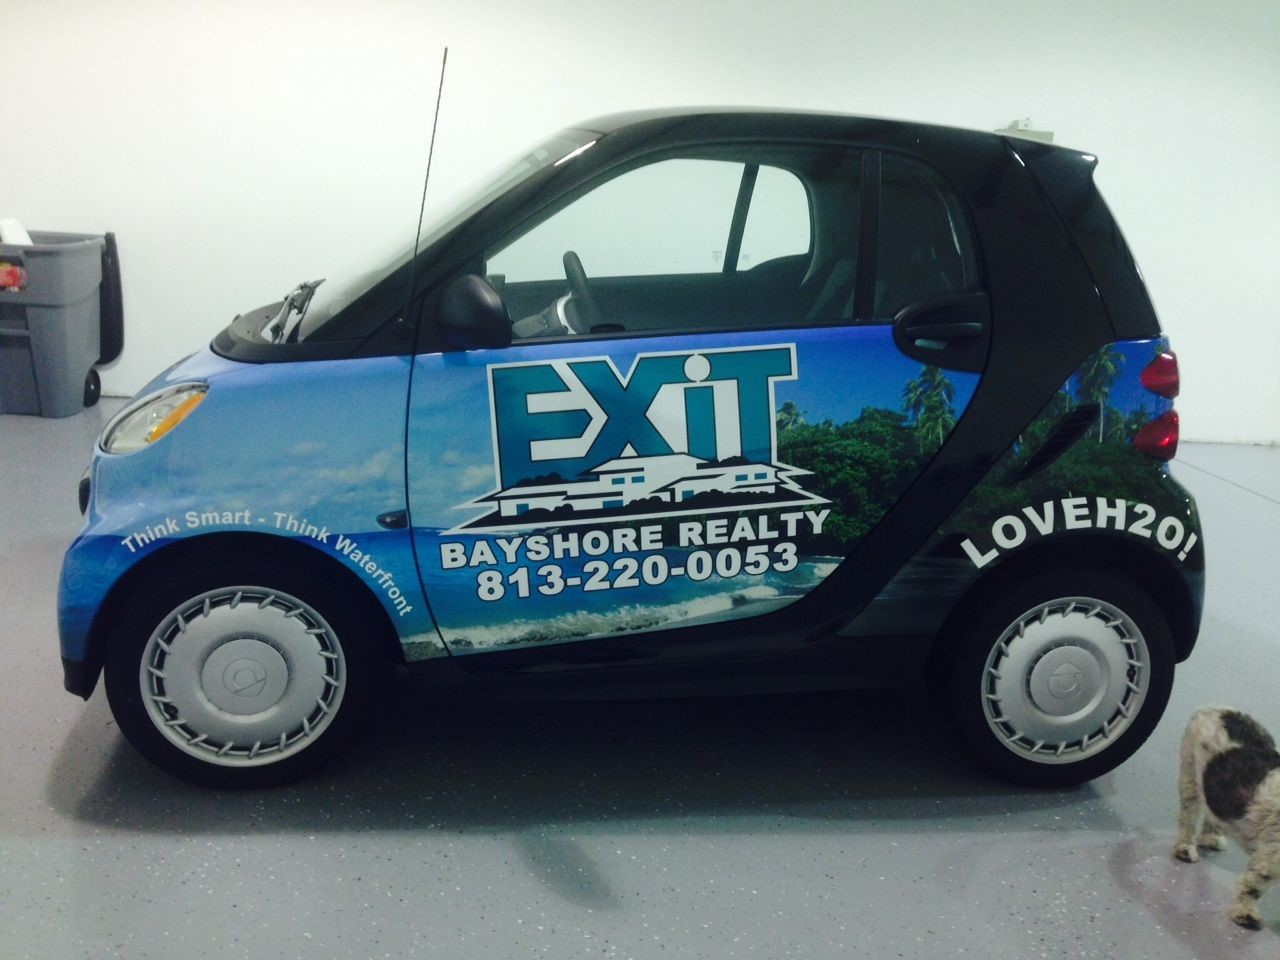 Full Vehicle Wraps | Vehicle Logo Graphics & Lettering | Real Estate Signs | Tampa Ybor City, FL